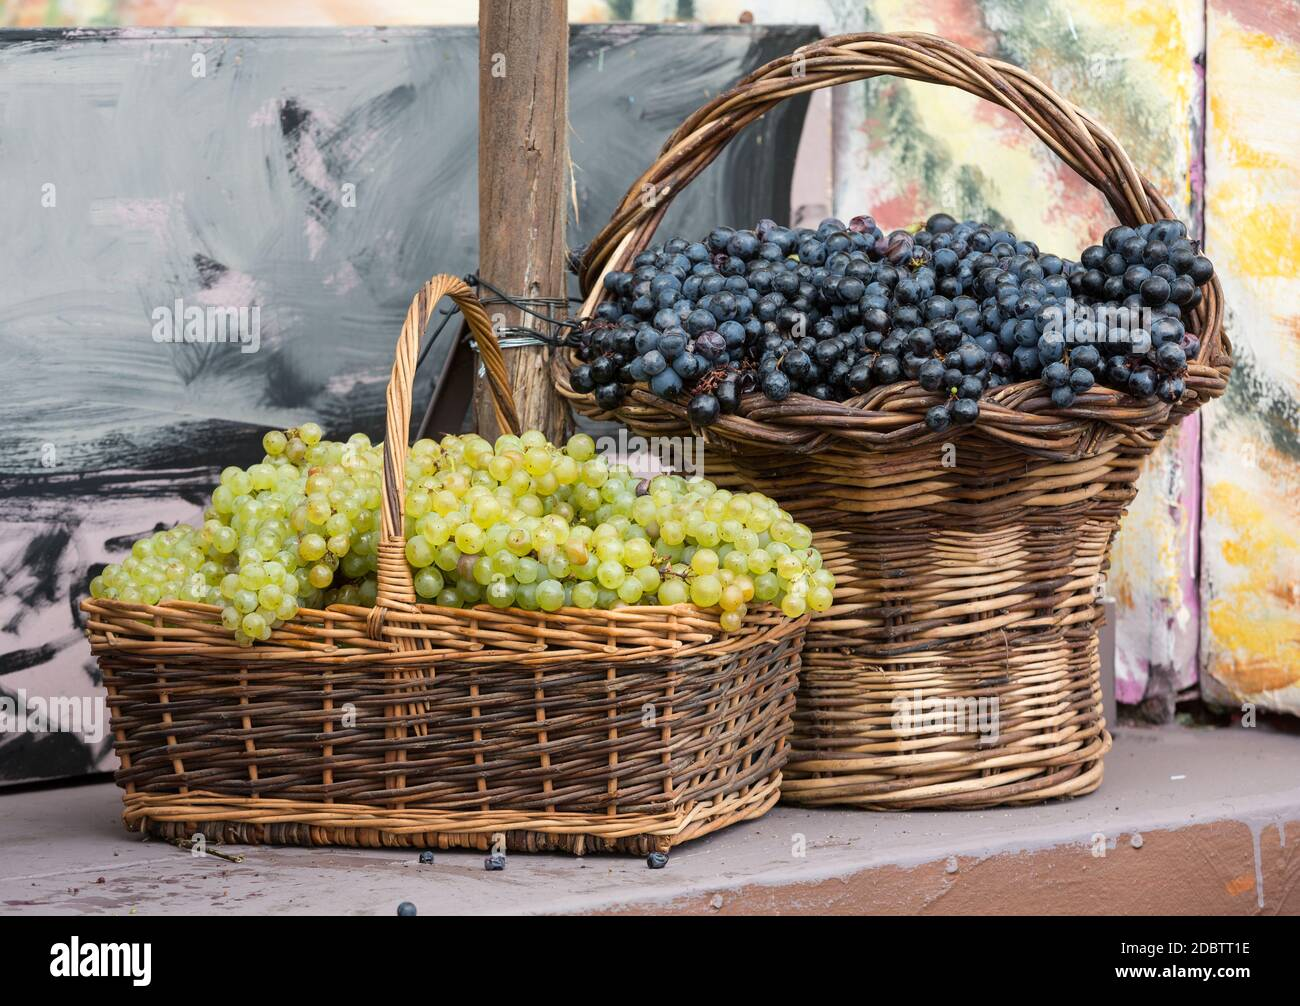 bunches of white and black grapes in a wicker basket. Stock Photo